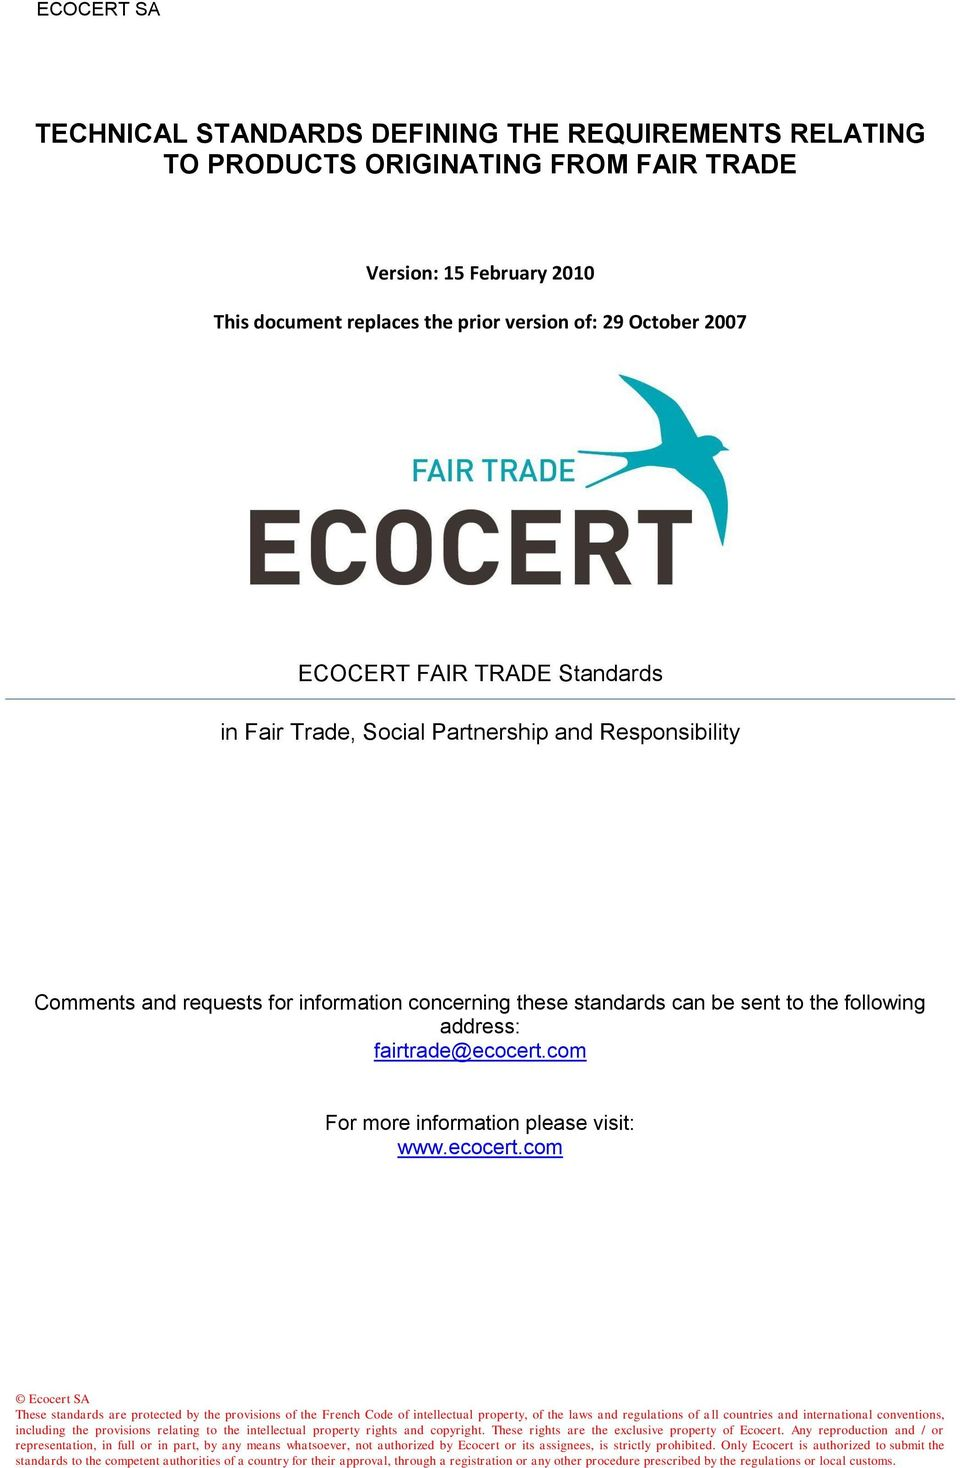 fairtrade@ecocert.